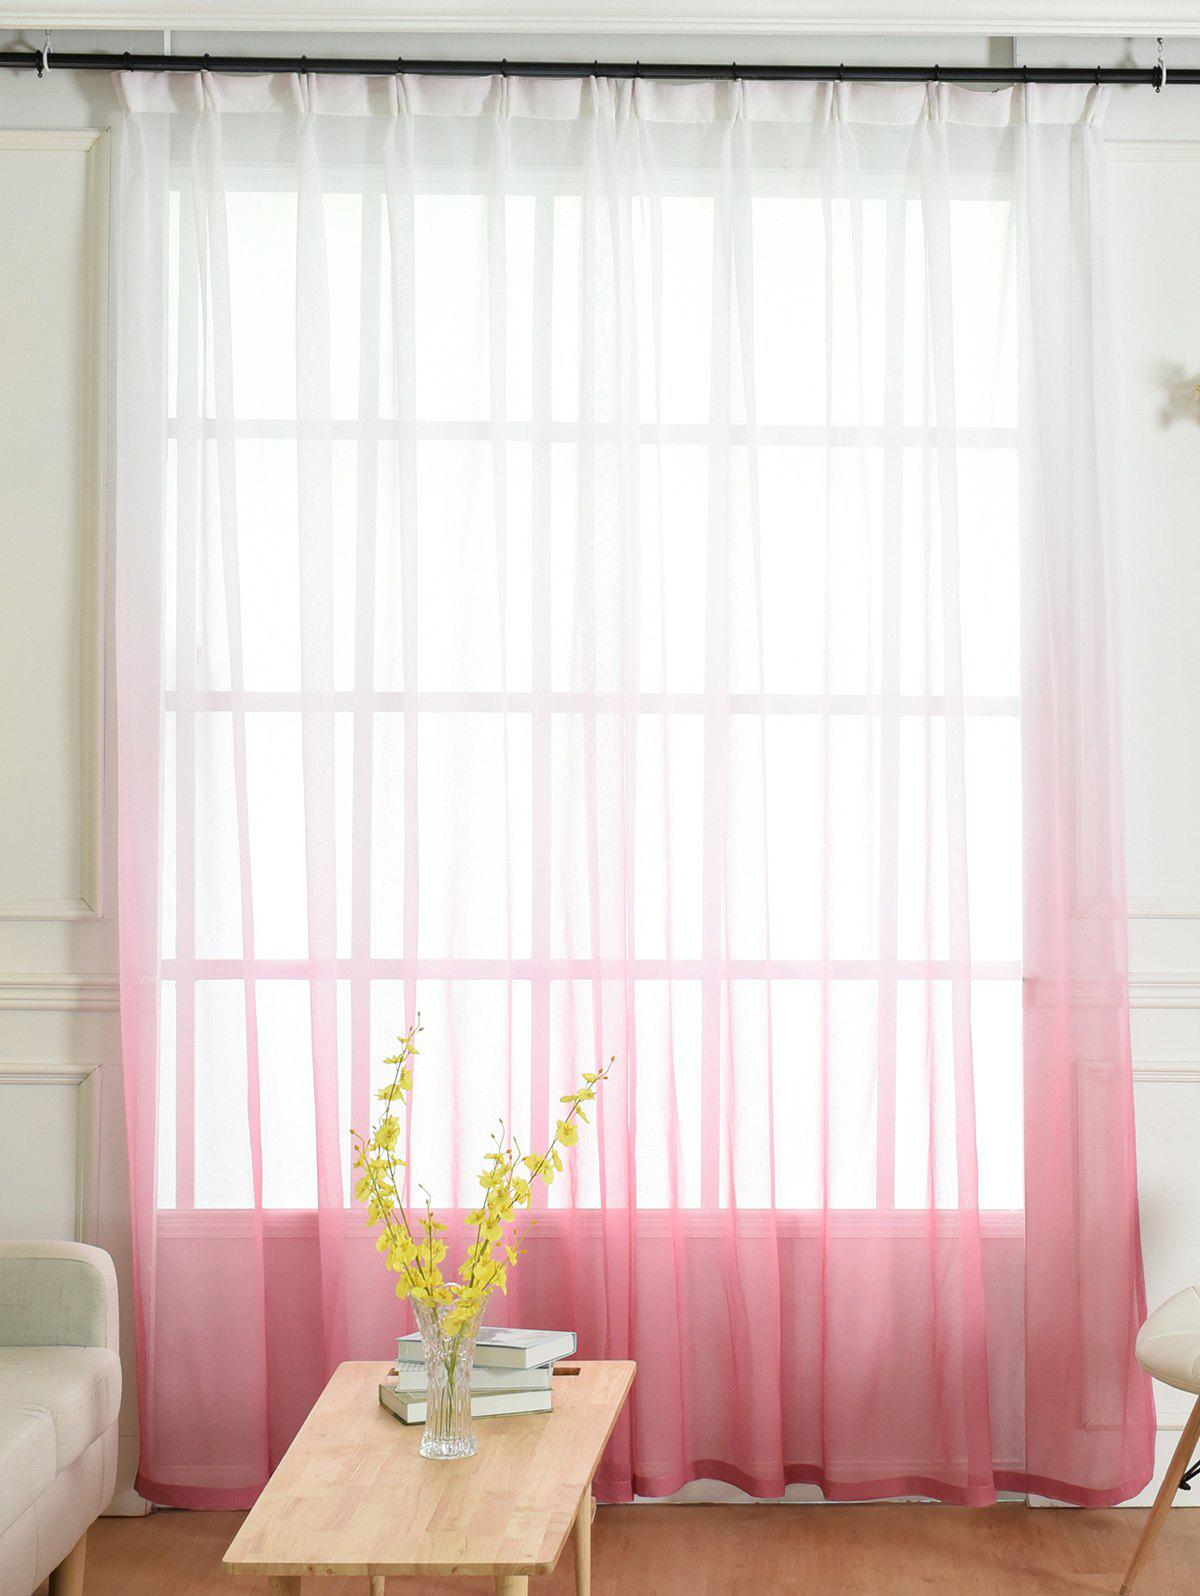 Ombre Sheer Tulle Curtain Decorative Window Screen - PINK W54*L108INCH